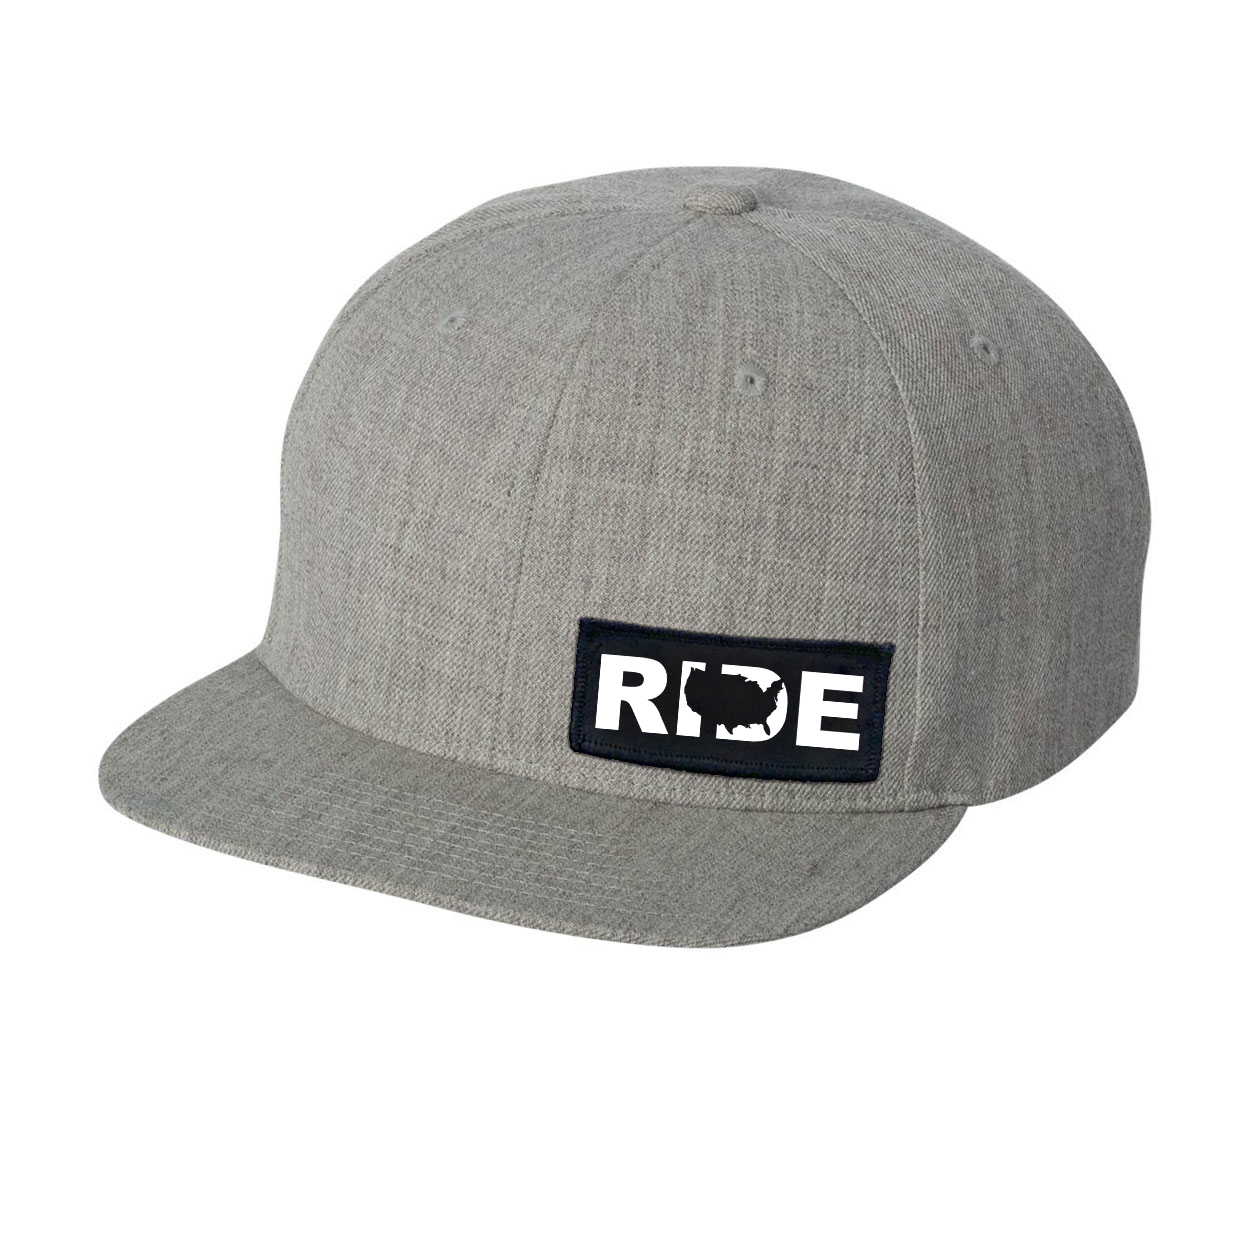 Ride United States Night Out Woven Patch Flat Brim Snapback Hat Heather Gray (White Logo)